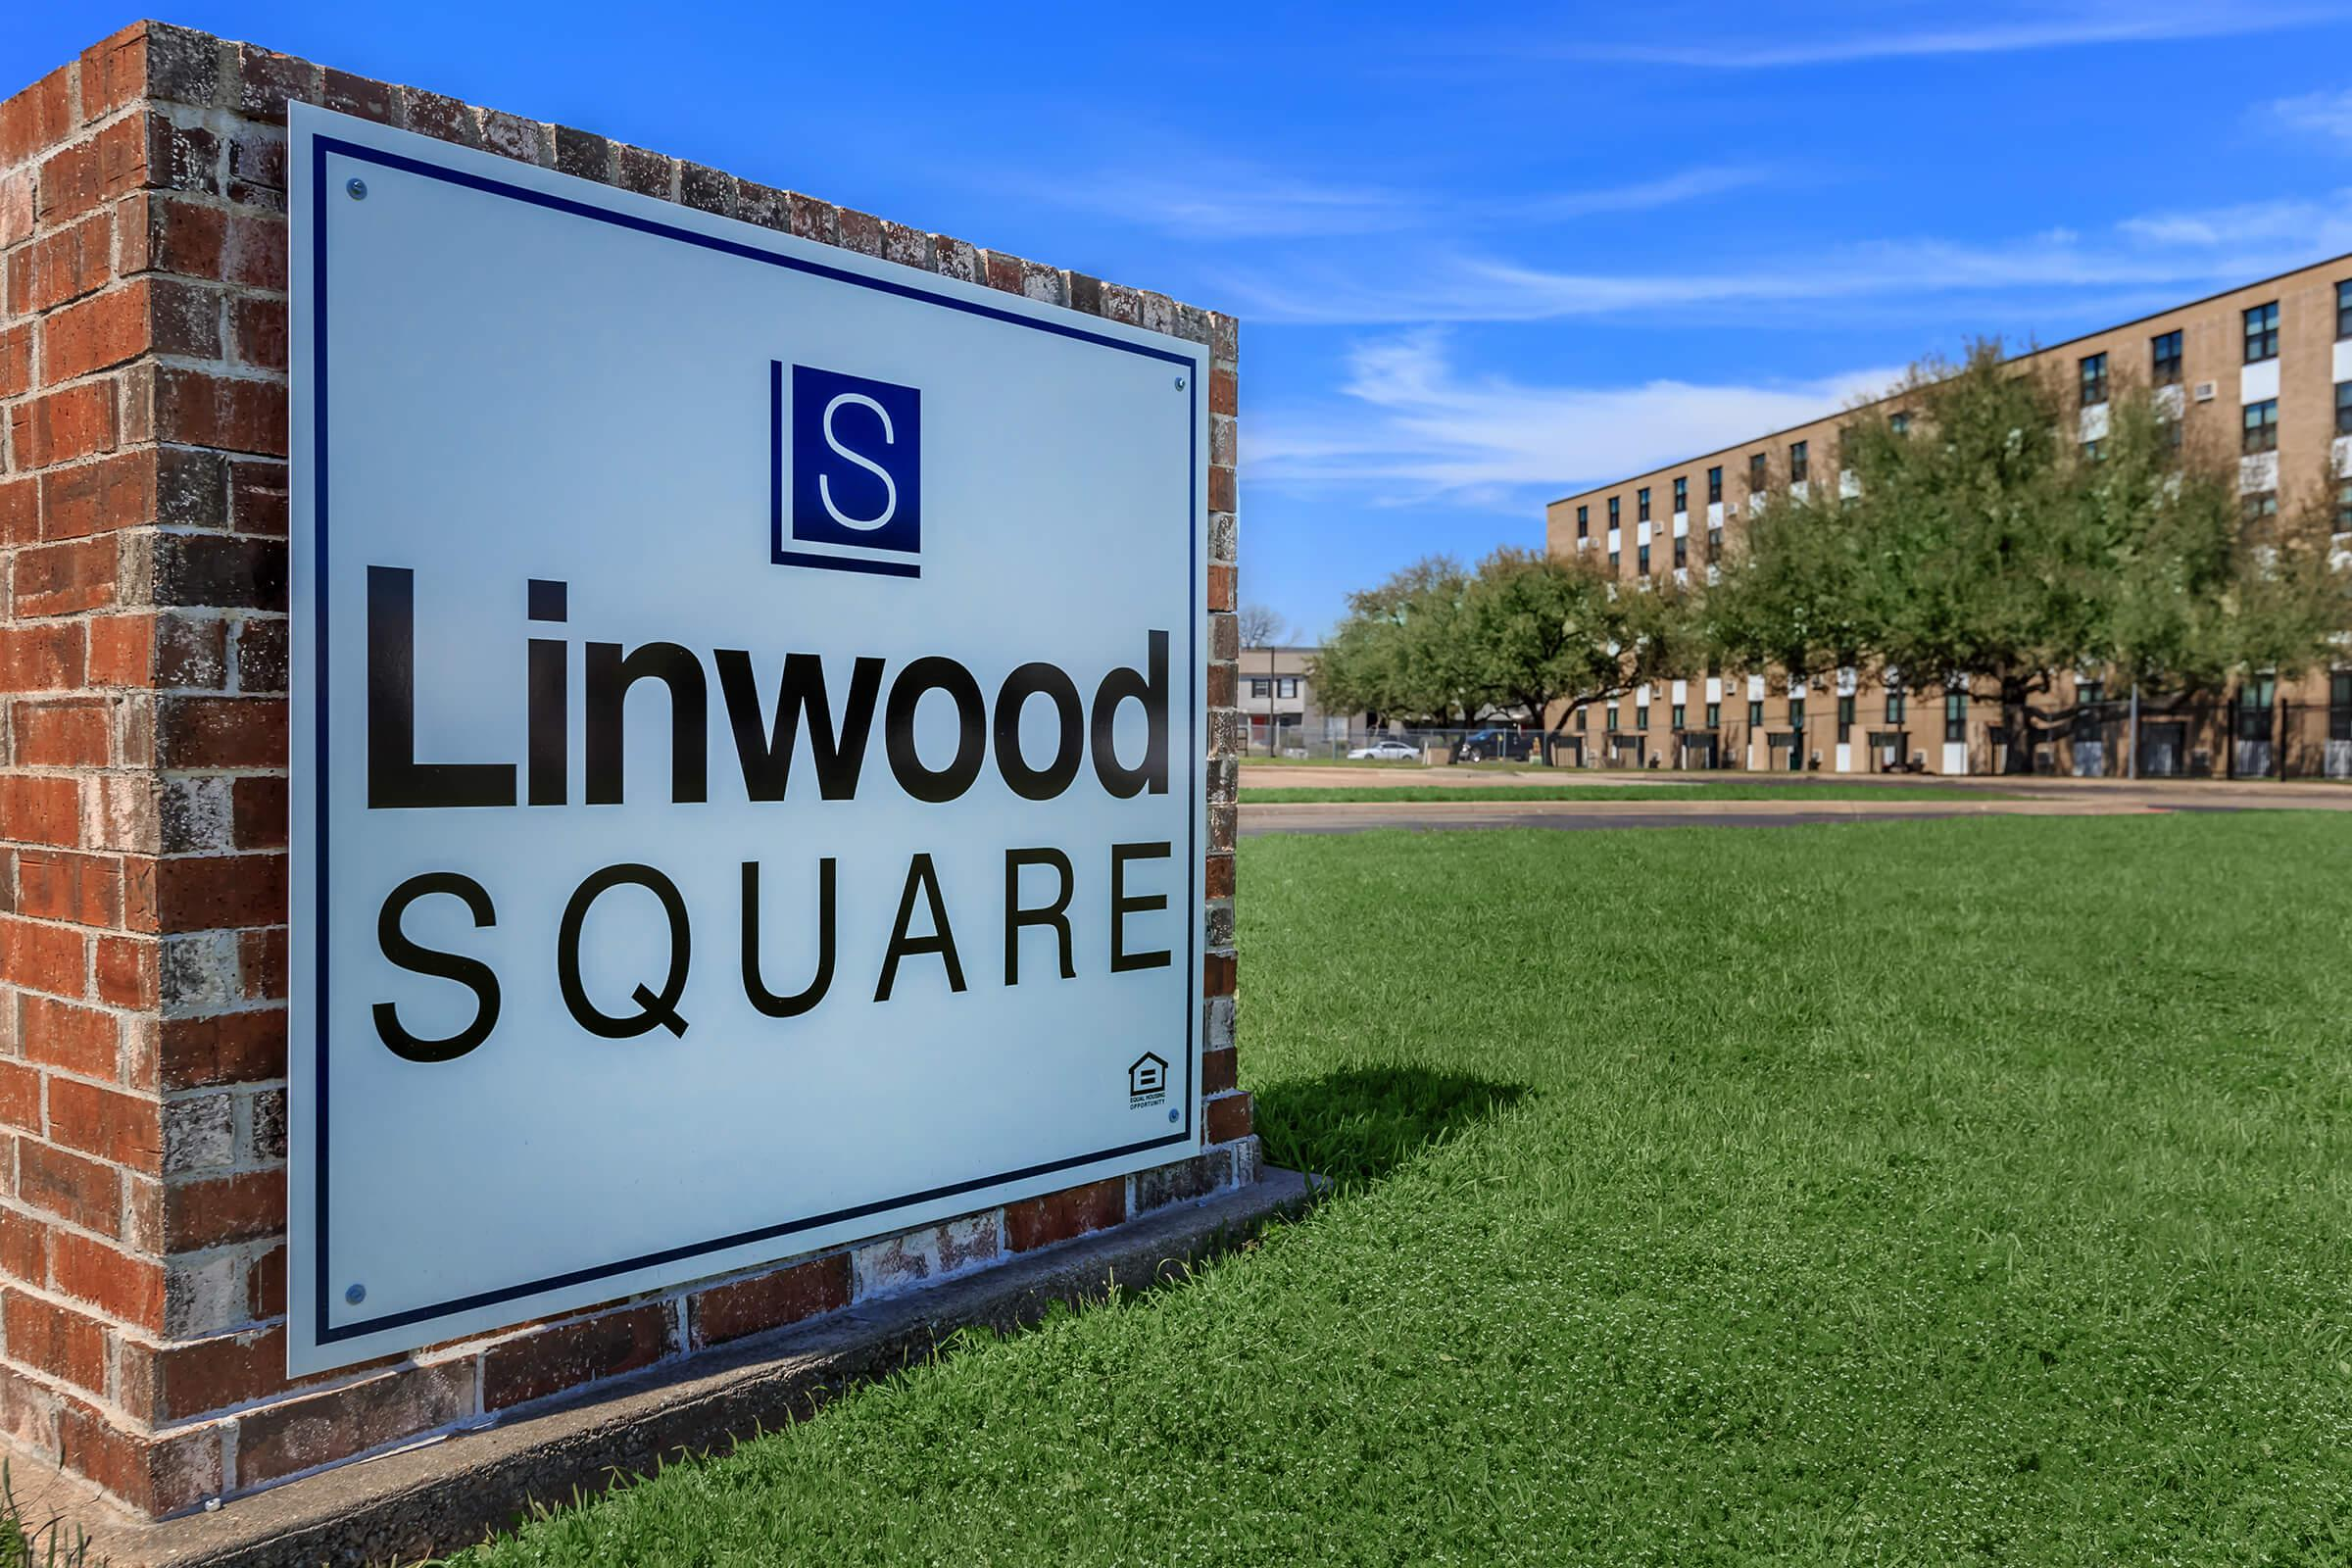 Image of Linwood Square in Fort Worth, Texas